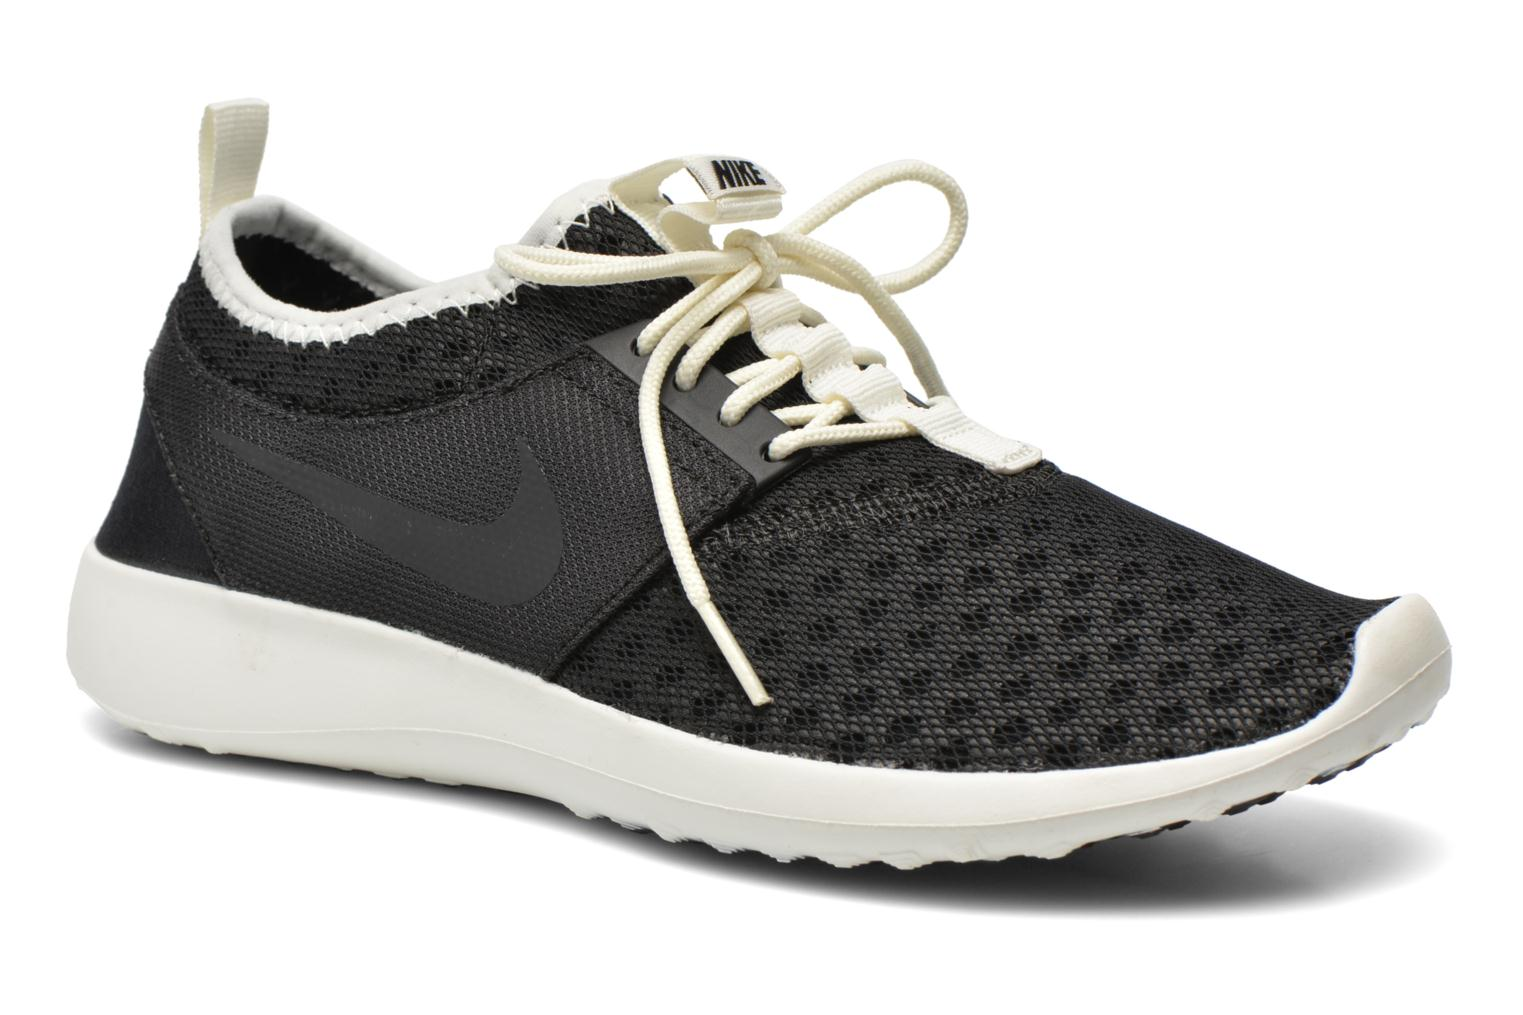 Nike Juvenate Black/Black-Sail